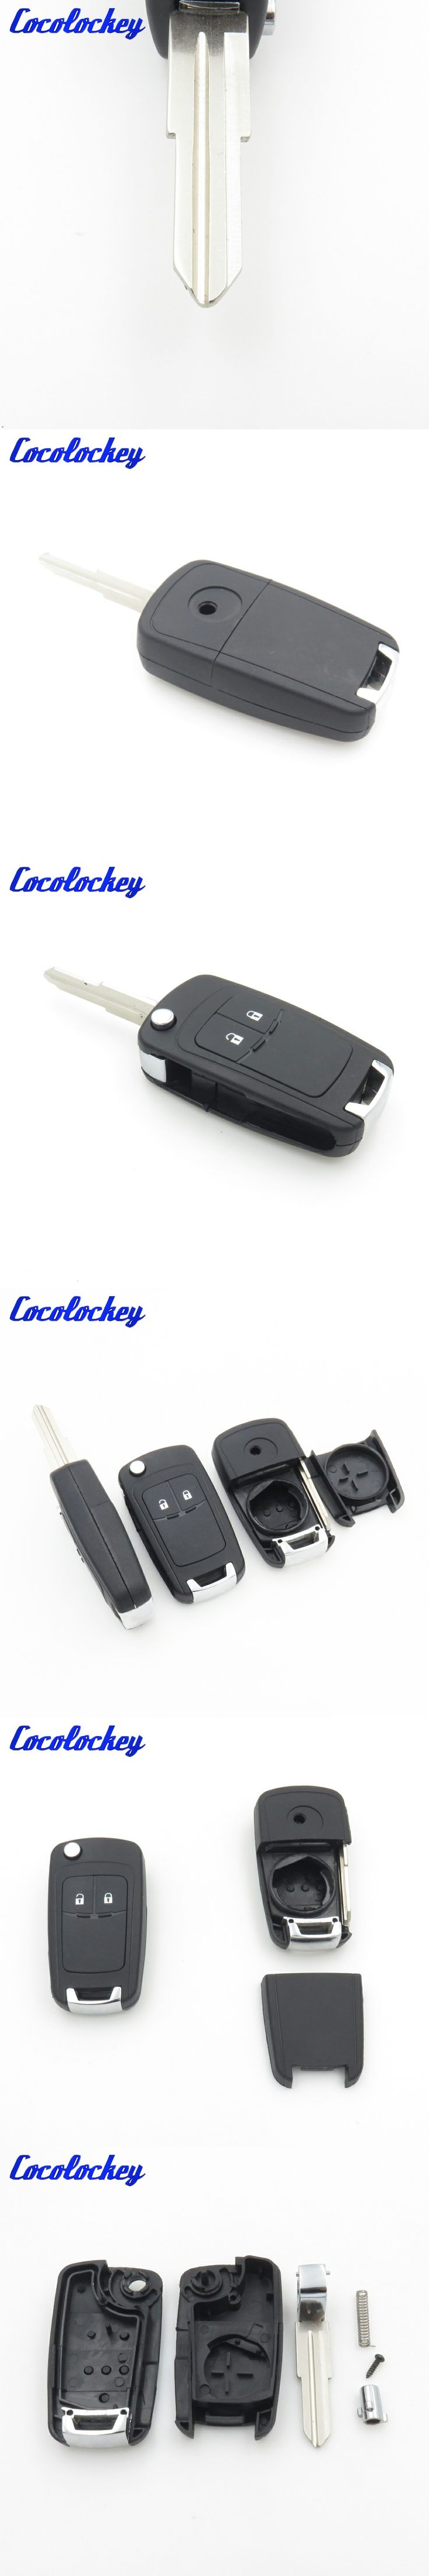 Cocolockey Folding 2Buttons Flip Remote Car Key Shell Fit for CHEVROLET Spark Car Replacement Blank Key Fob 2 Buttons